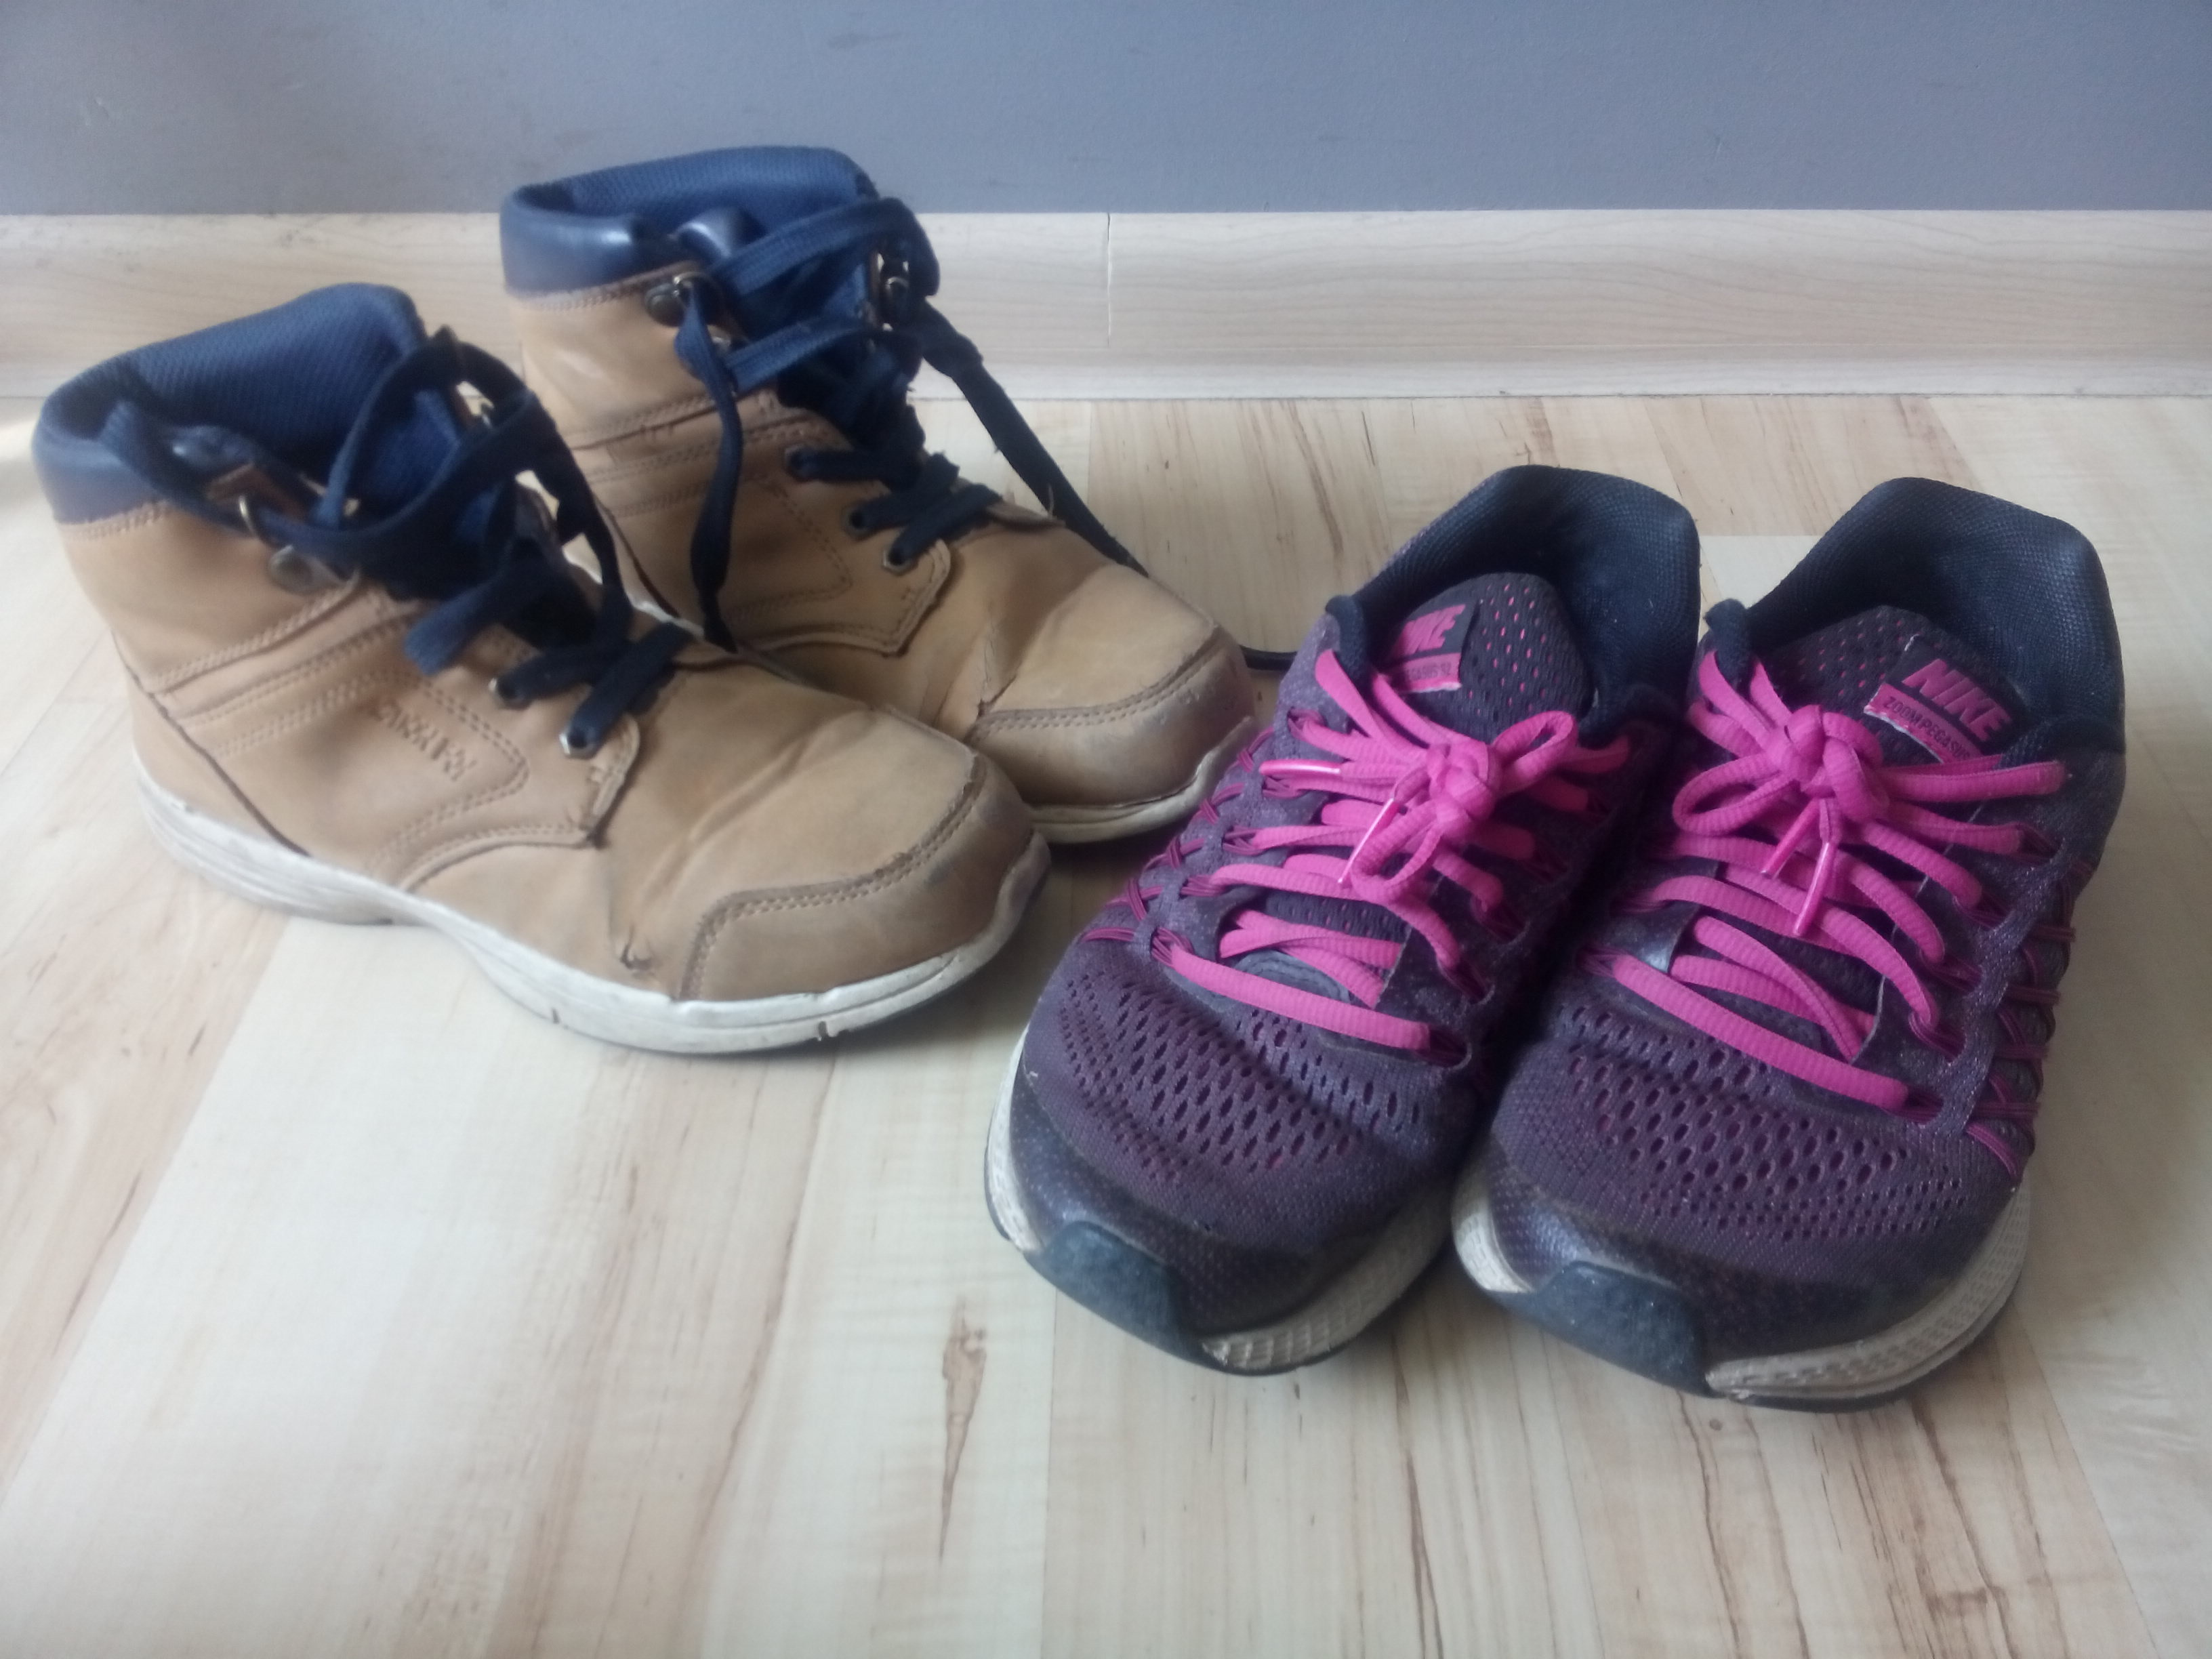 A pair of large tan and blue laceup boots beside a pair of pink and purple running shoes